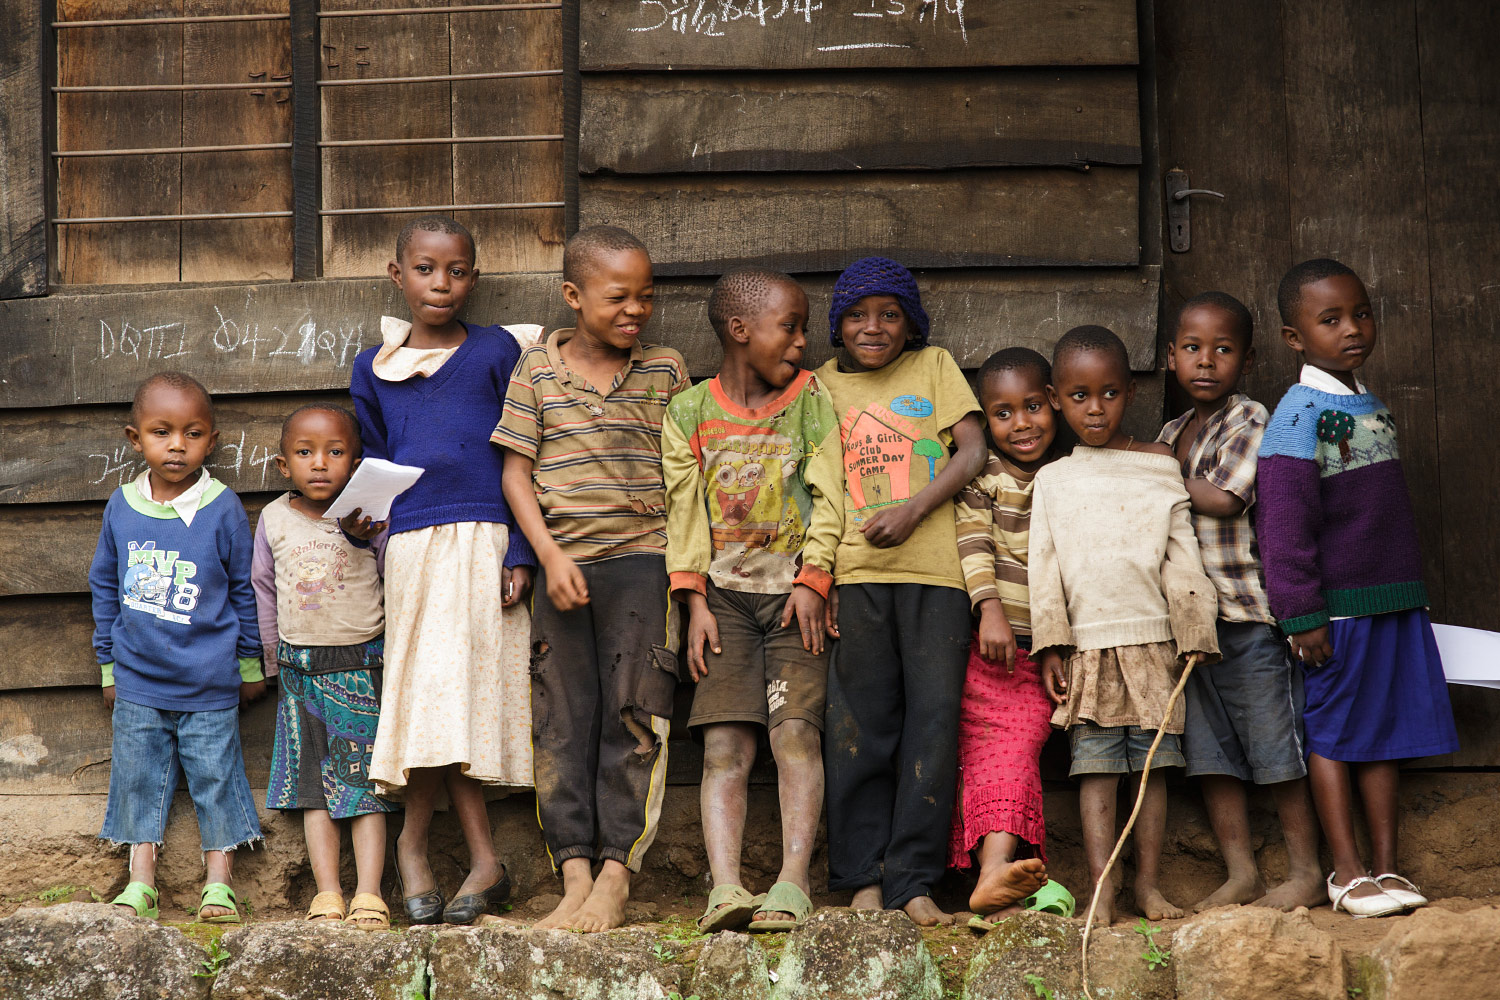 Village children in Kibosho-Umbwe